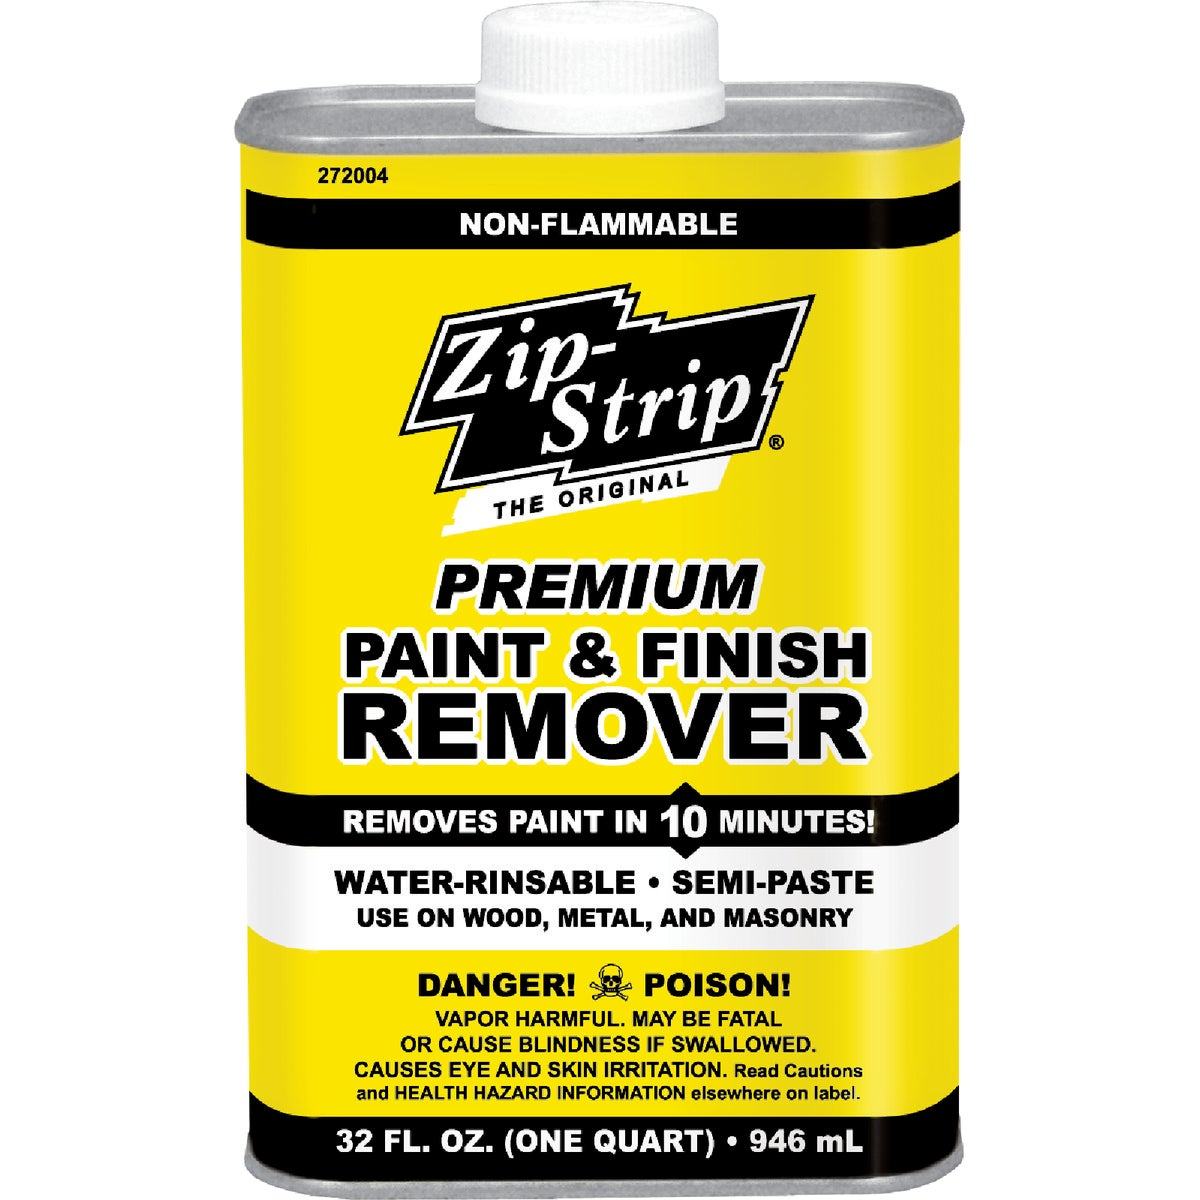 ZIP STRIP PAINT REMOVER - 272004 by Absolute Coatings